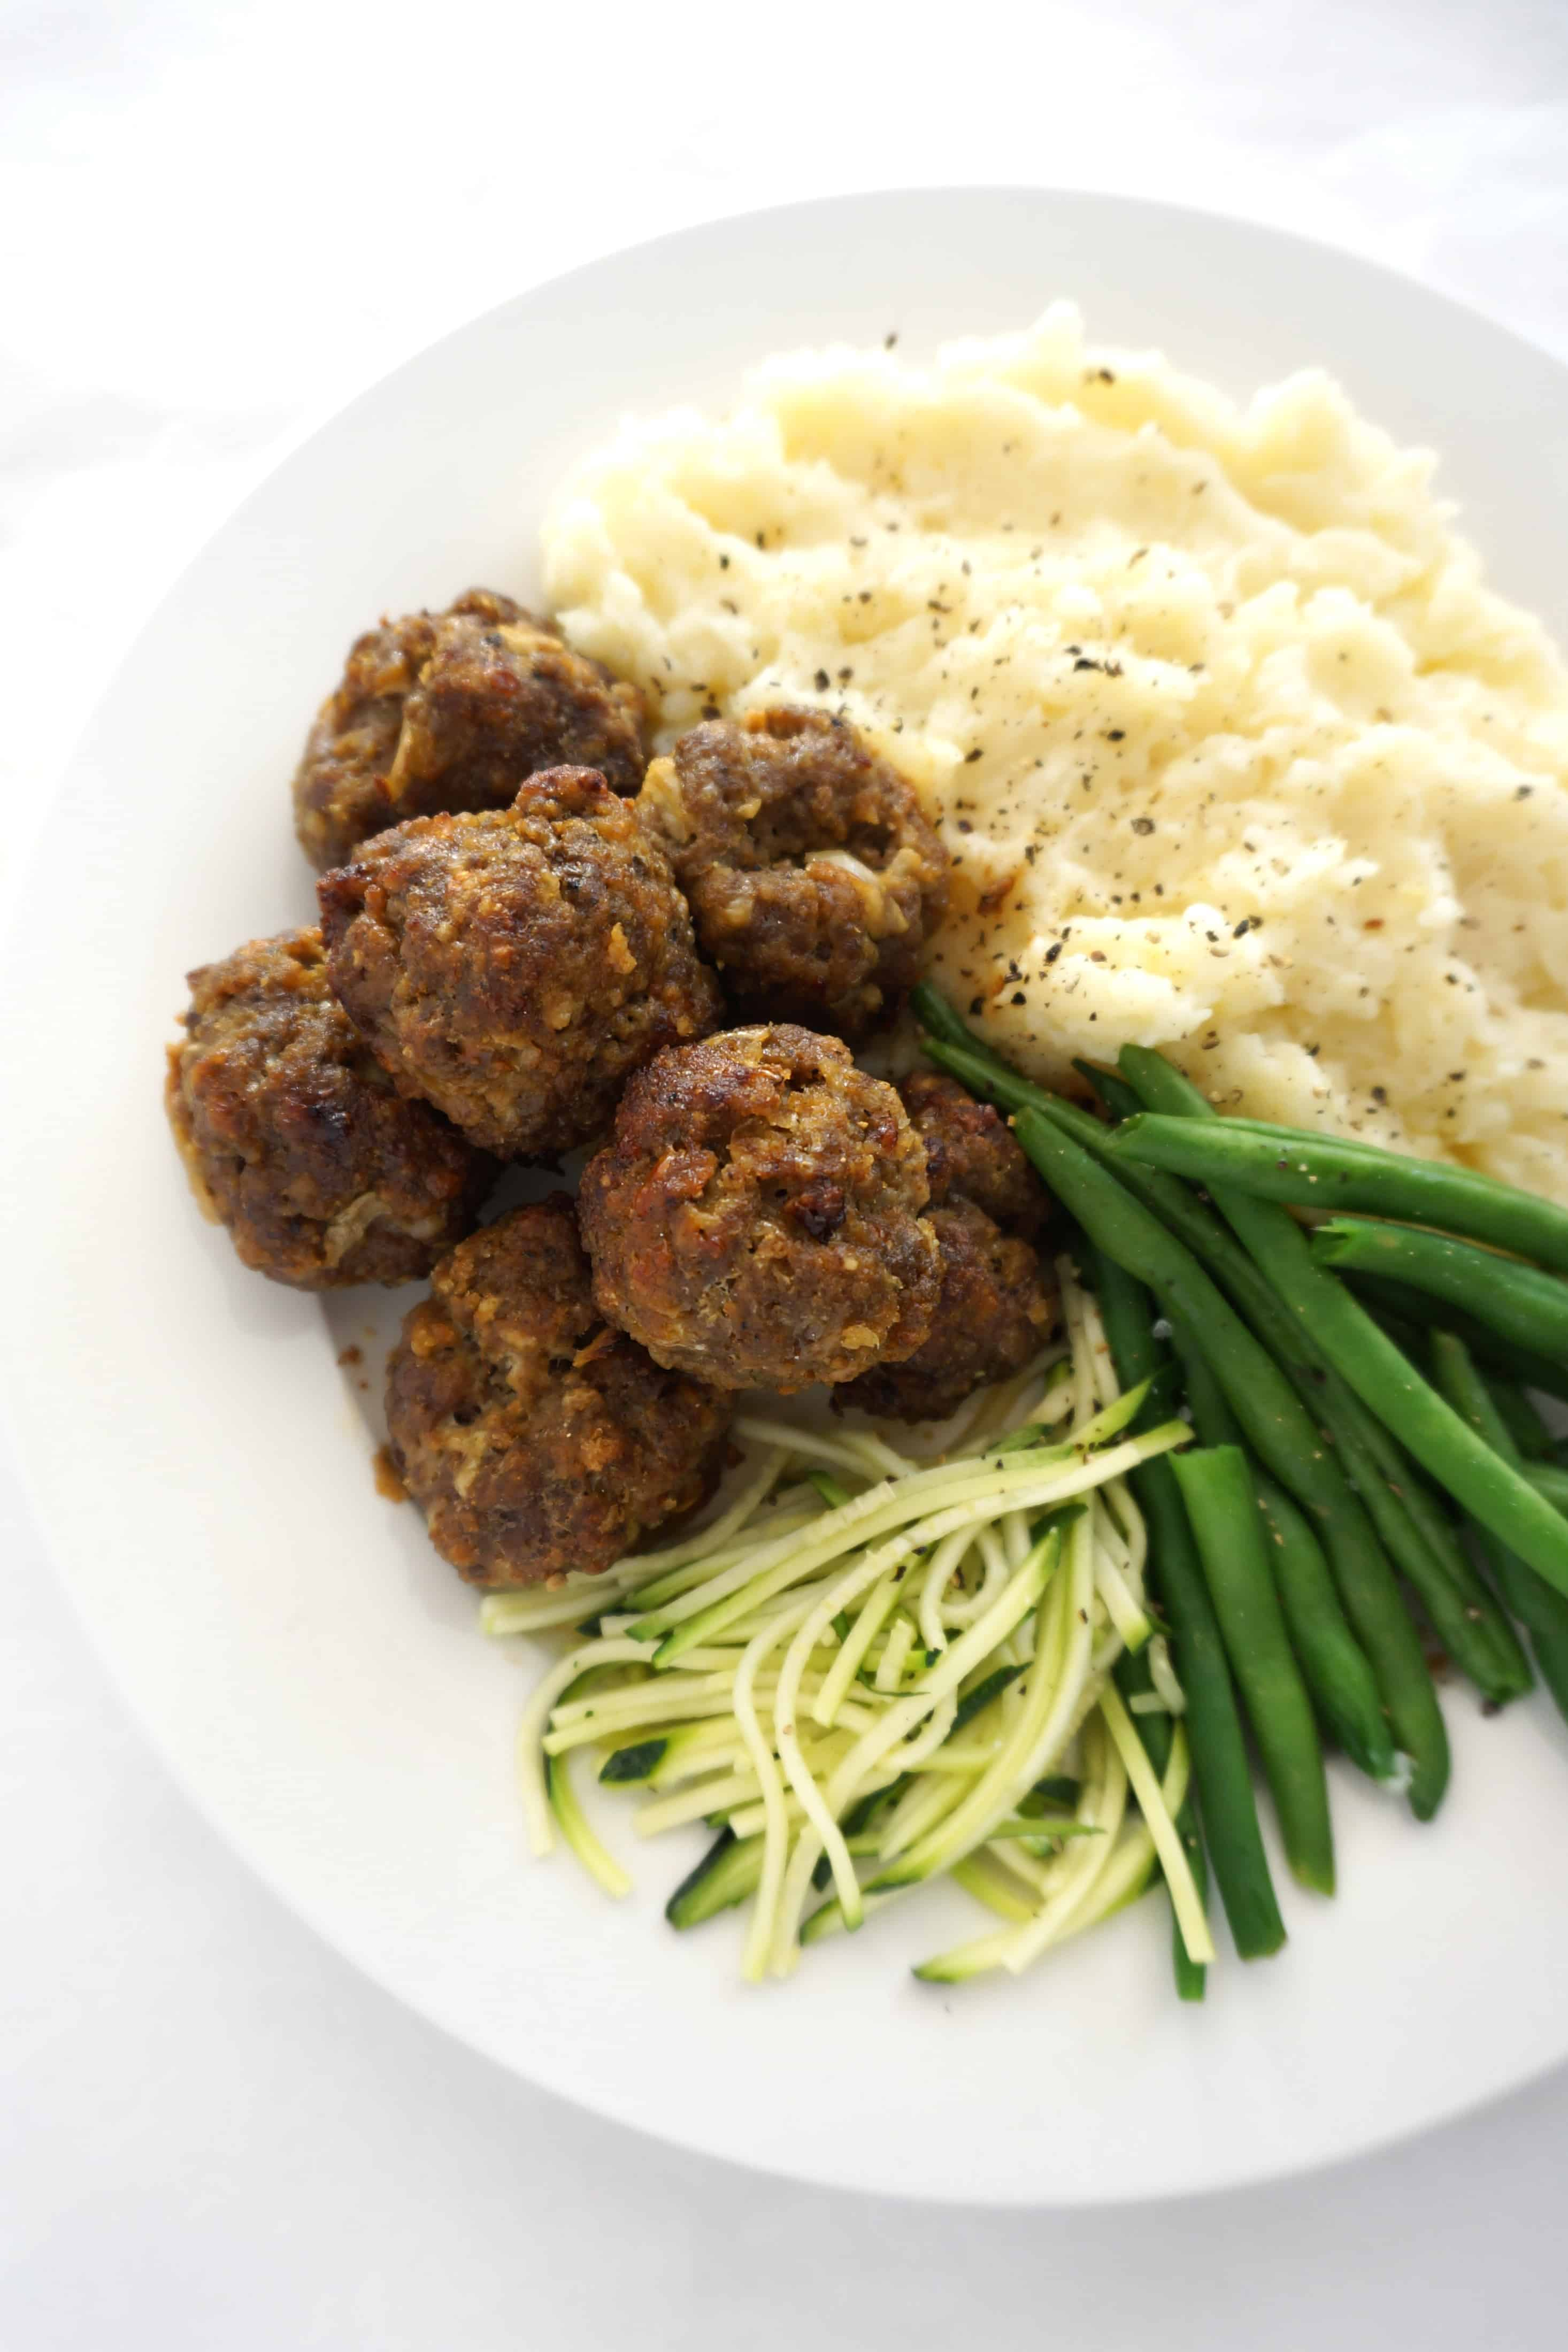 meatballs, mashed potato and vegetables on a white plate